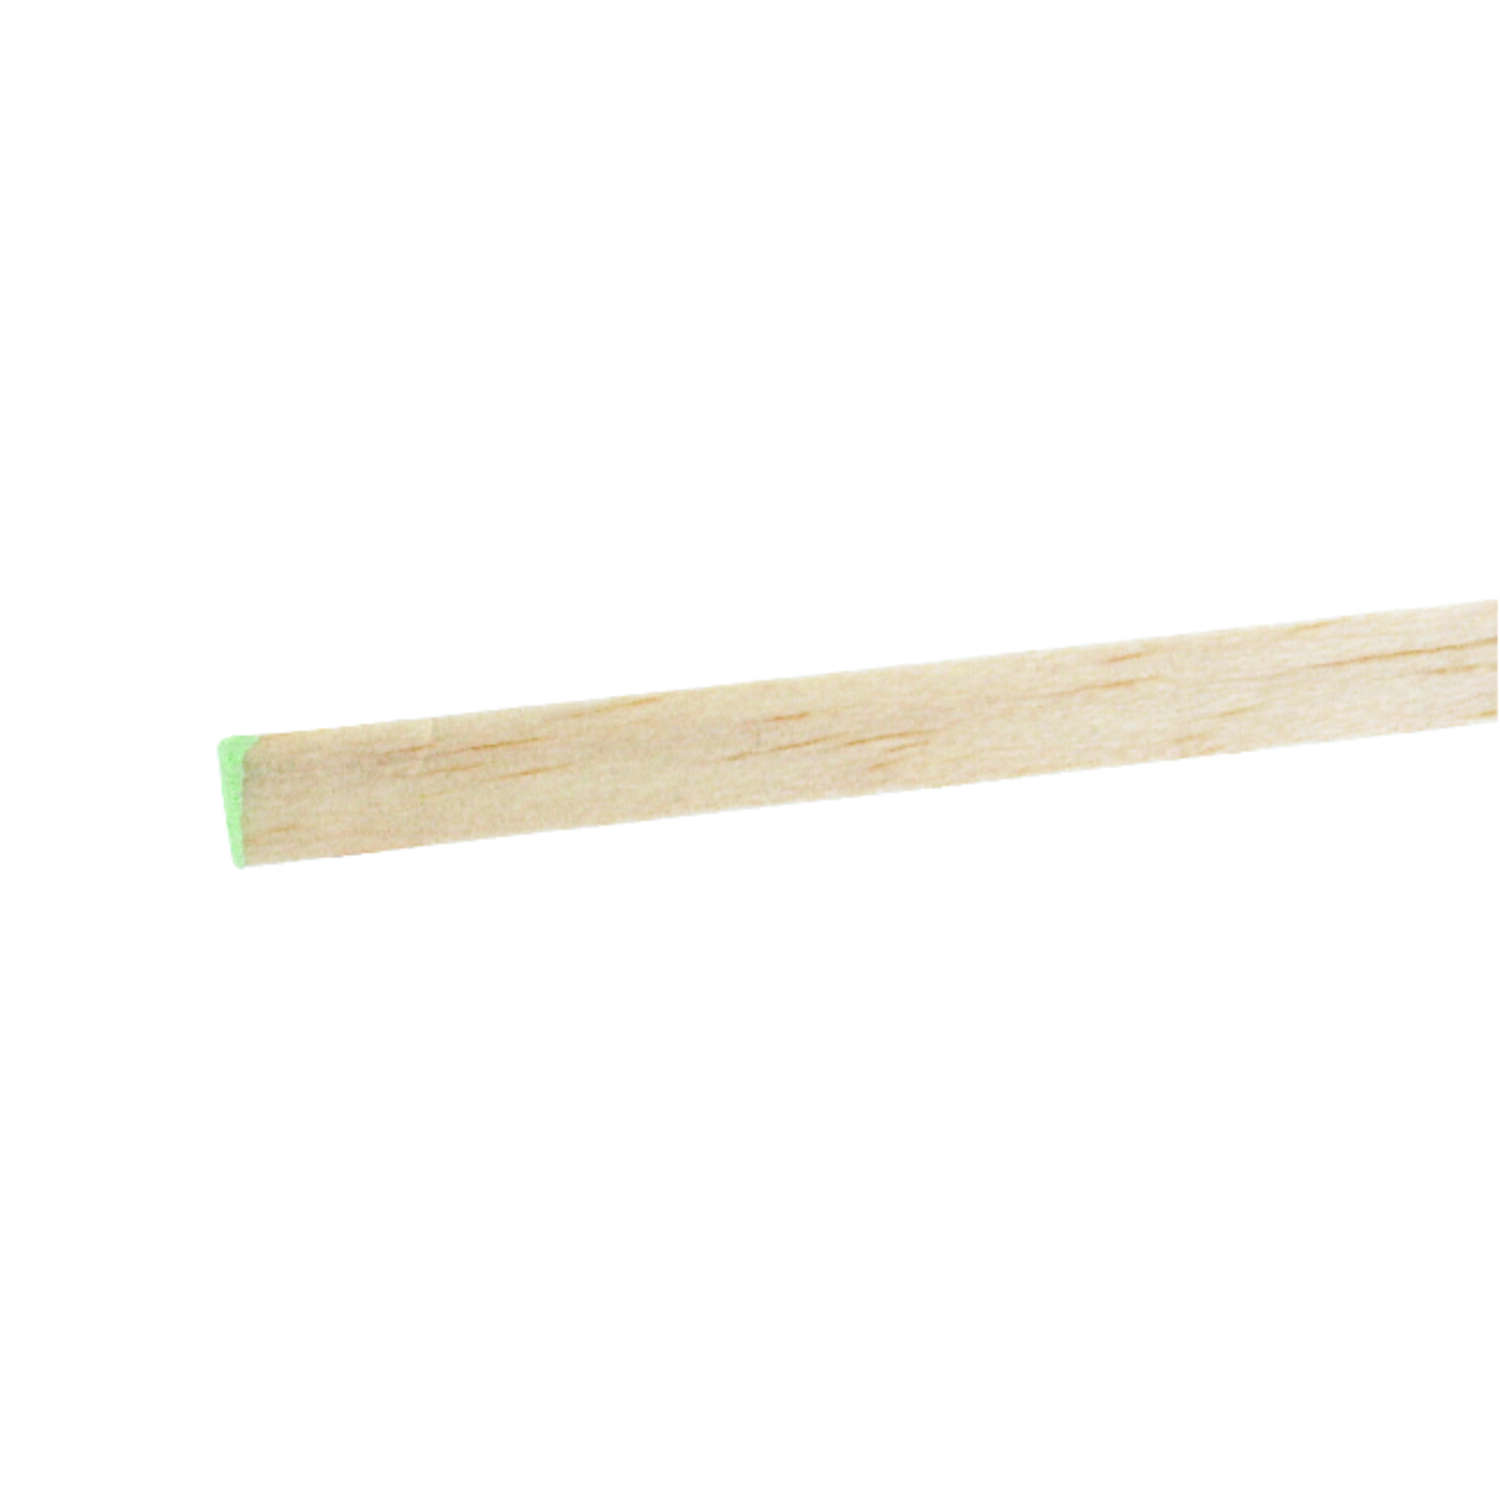 Midwest Products  1/2 in. W x 3 ft. L x 1/8 in.  Balsawood  Strip  #2/BTR Premium Grade